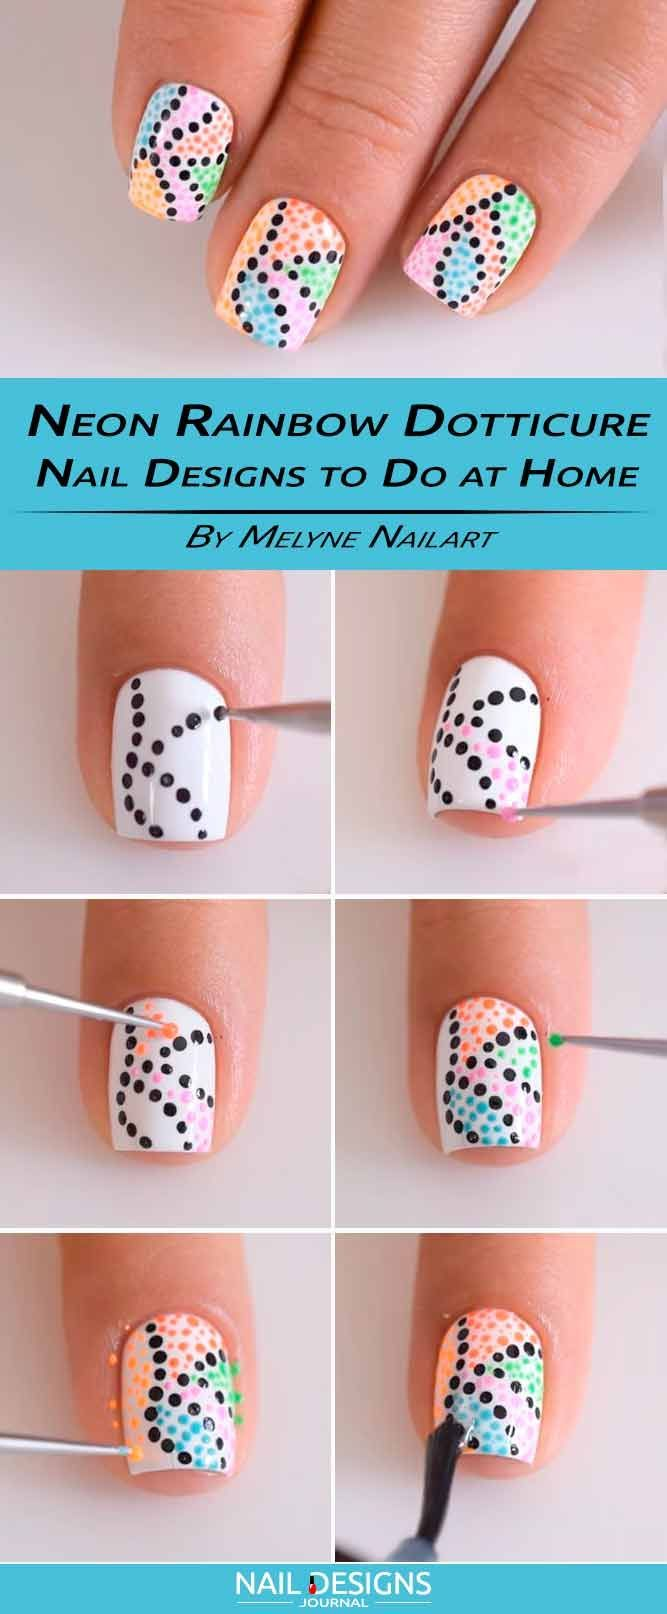 15 Step By Step Tutorials How To Do Nail Designs At Home Beauty